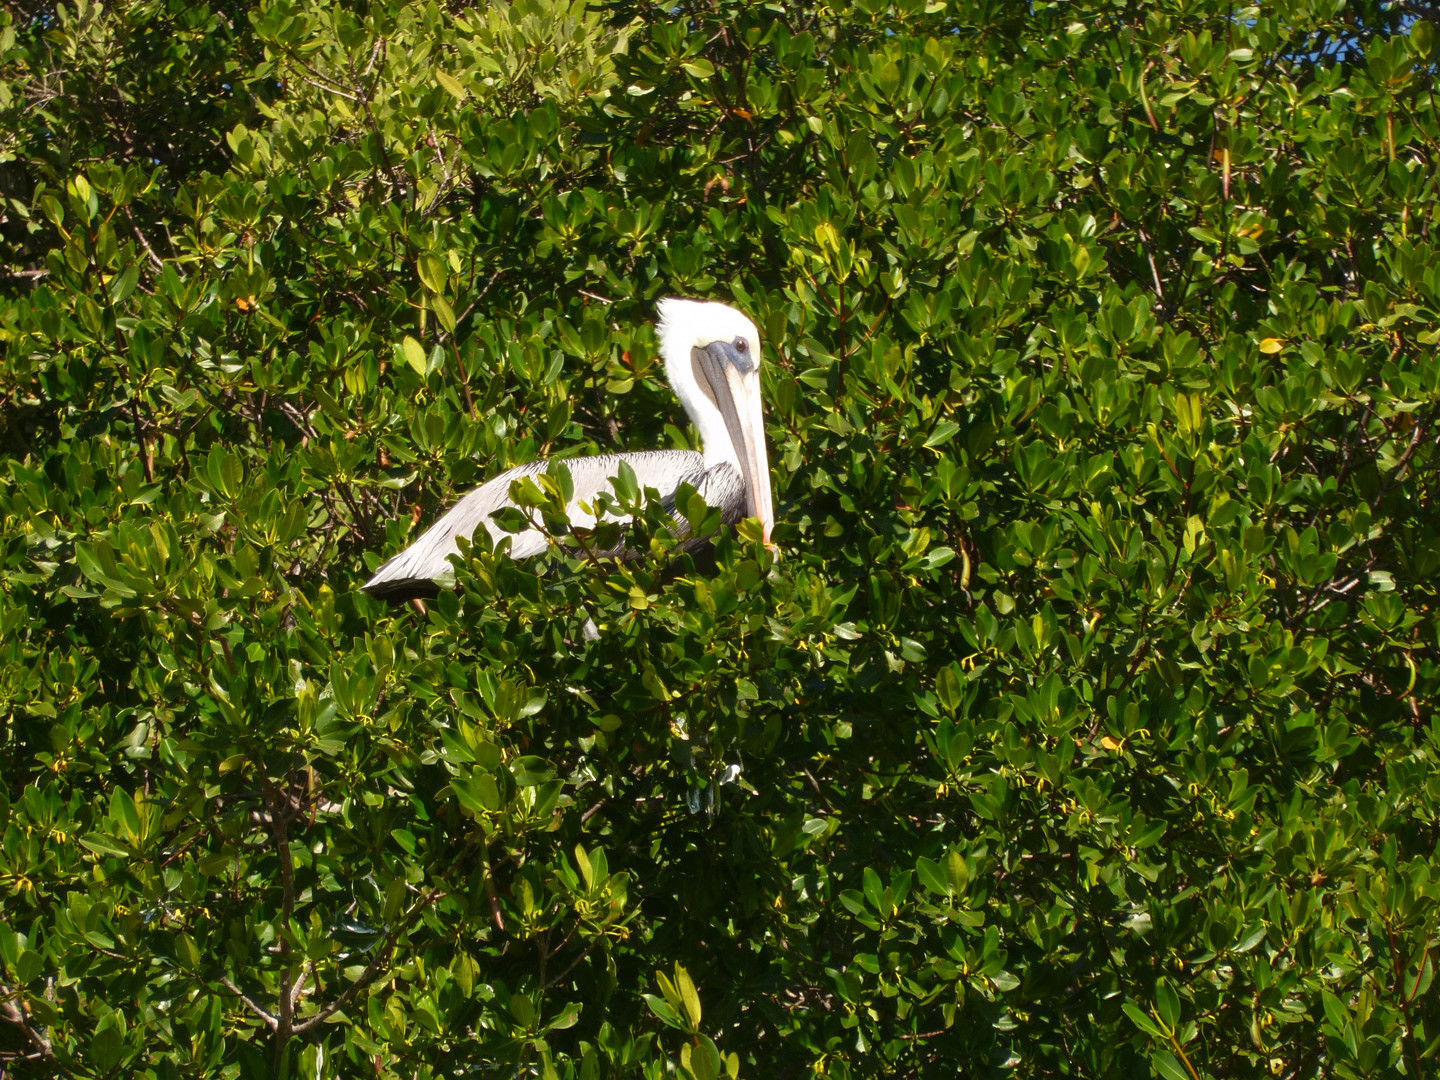 Discover White Pelicans in the Ten Thousand Islands